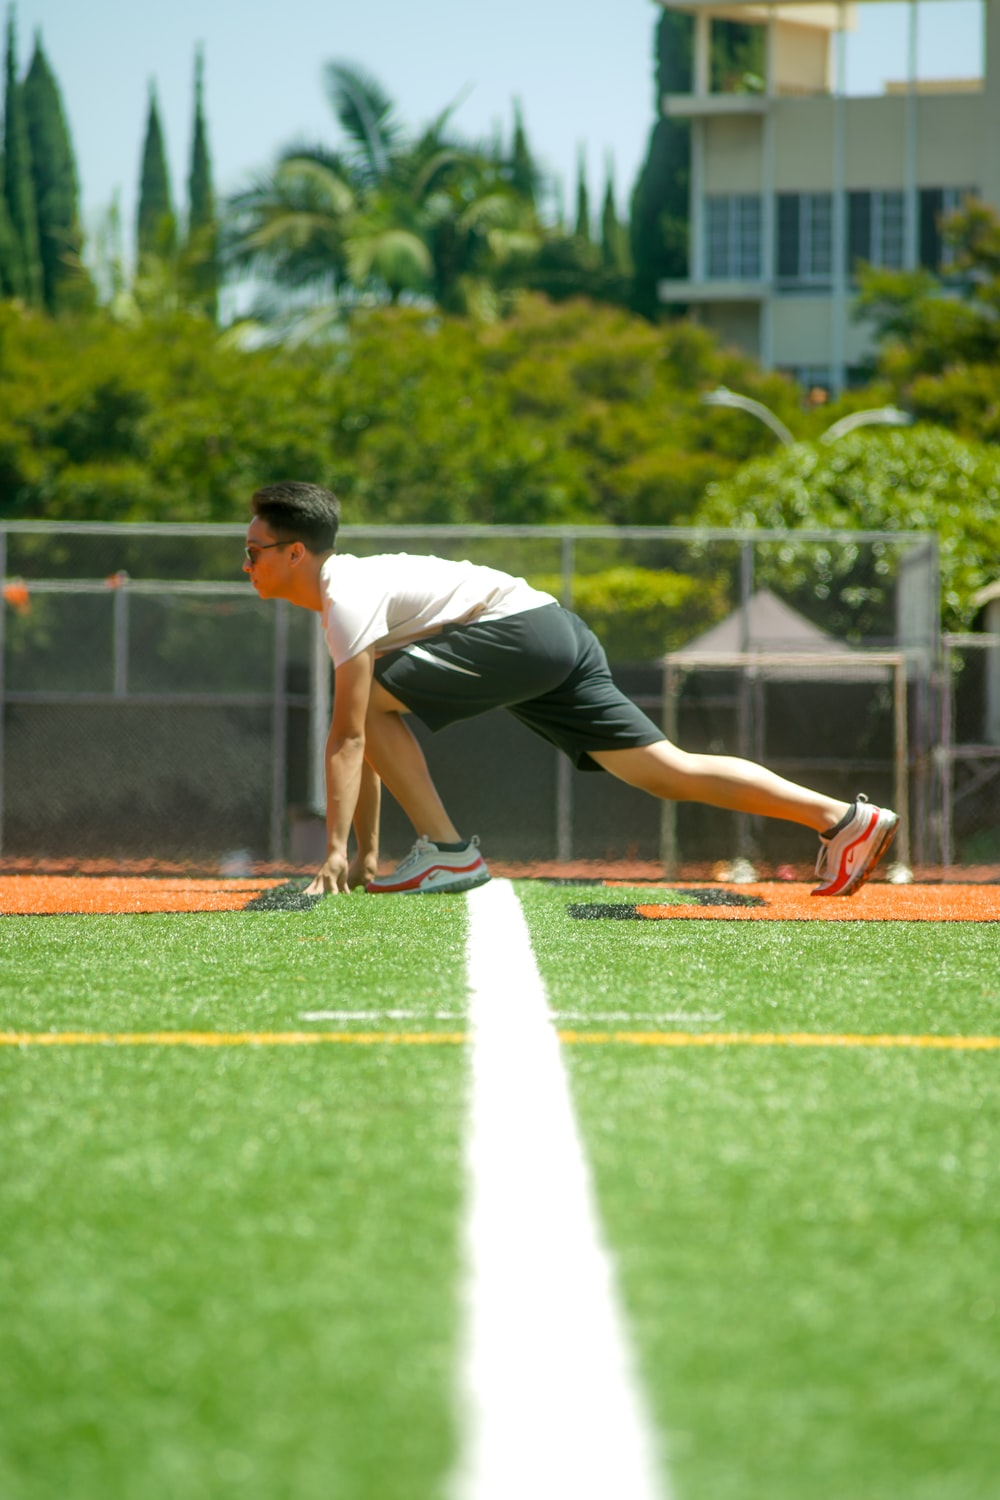 man on grass getting ready to run during day